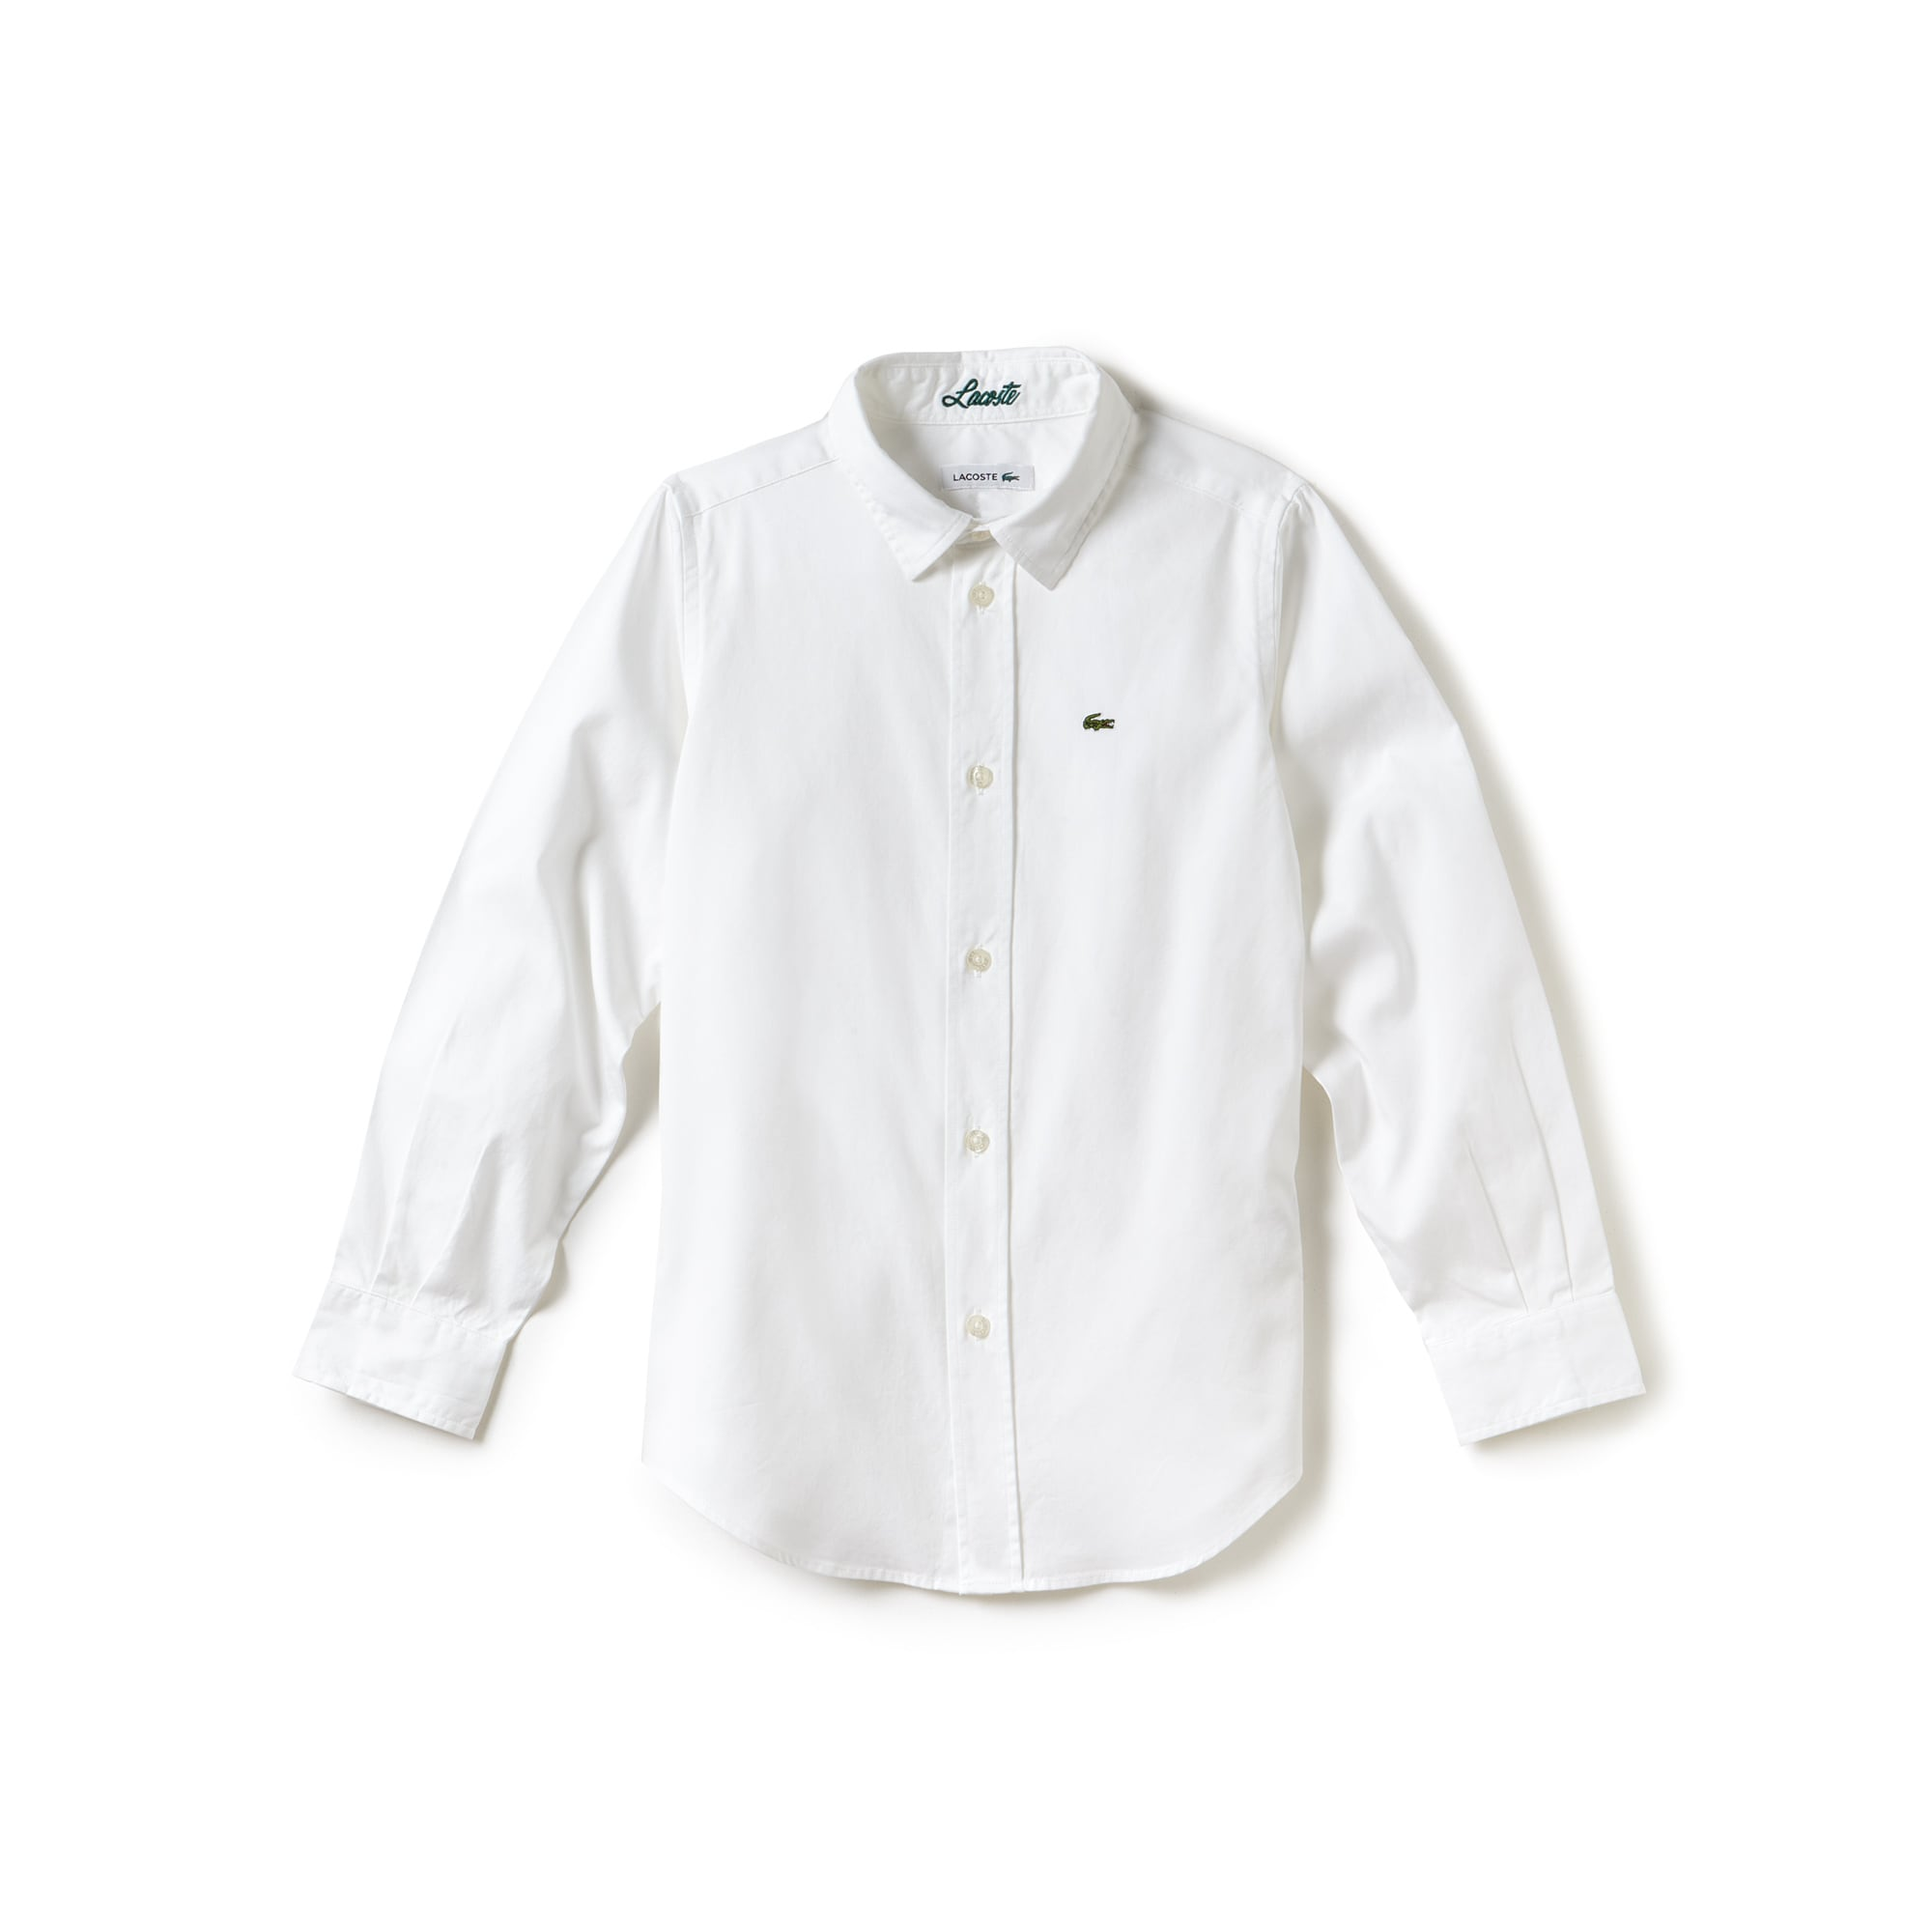 Boy's Oxford Cotton Knit Shirt